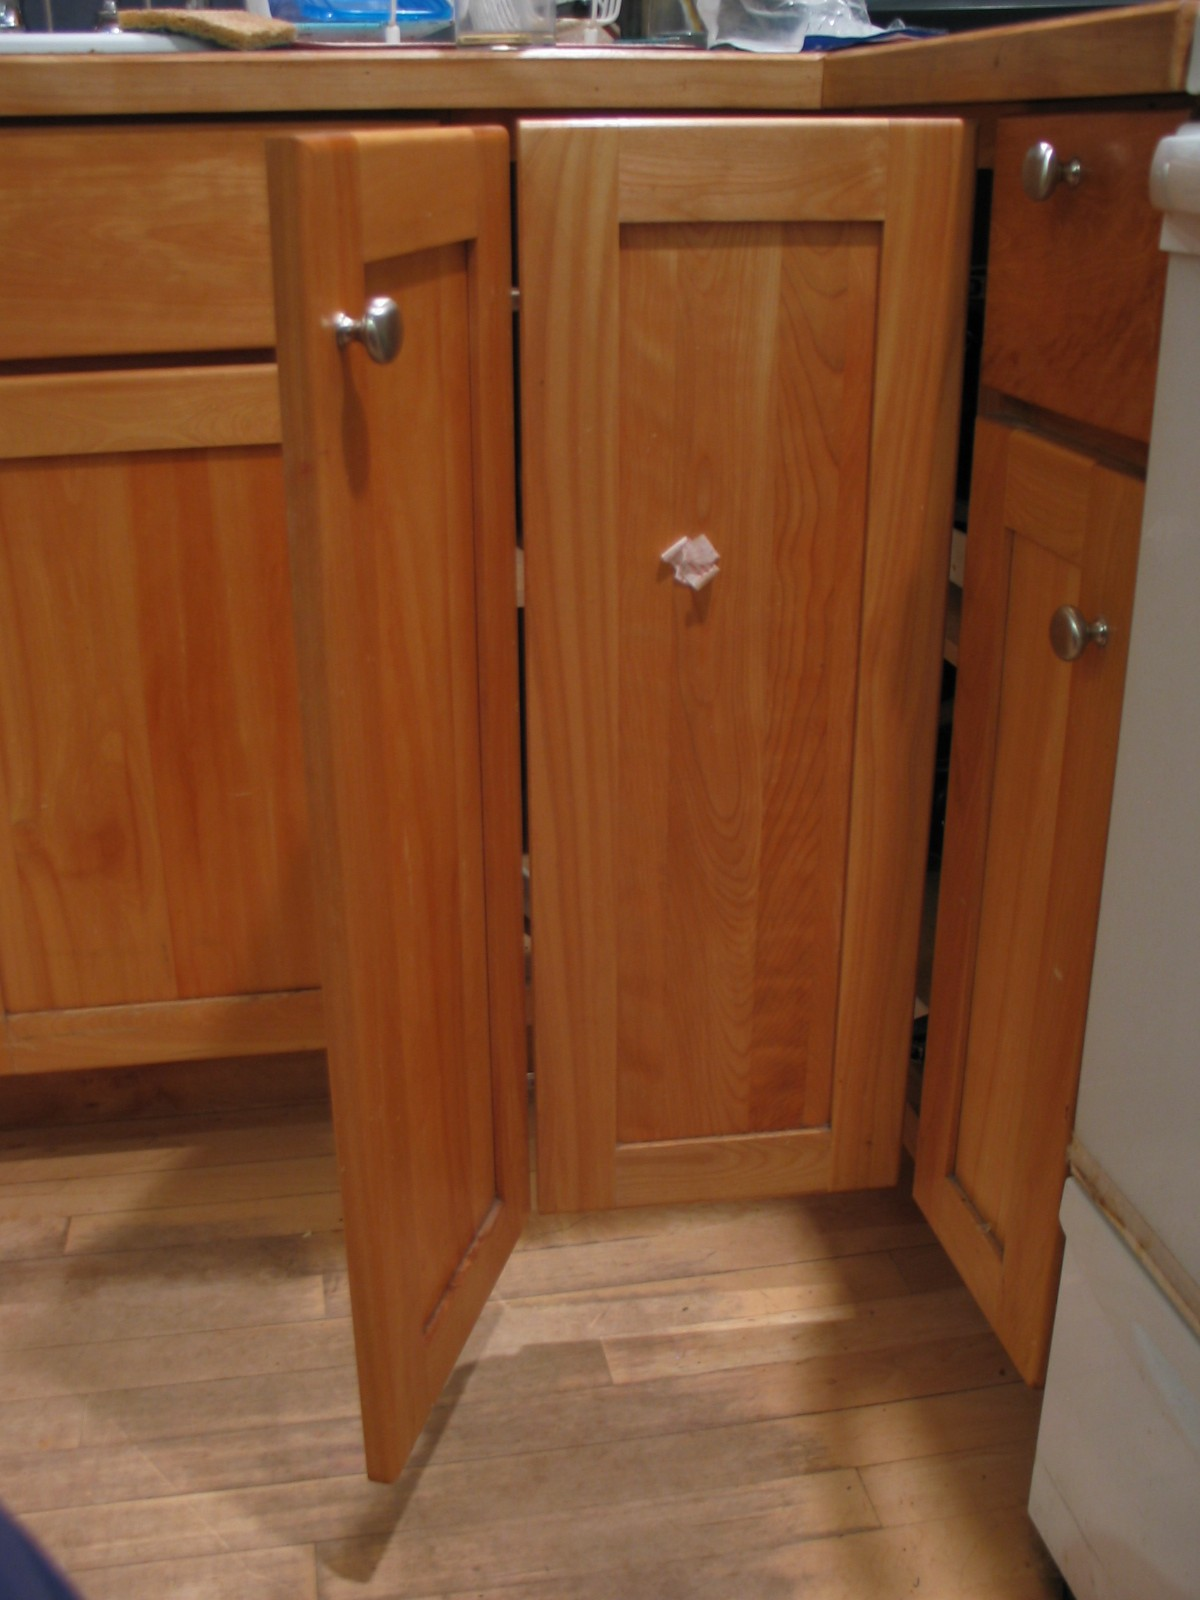 Superieur An Open, Wood, Corner Cabinet Door. There Are Two Panels With A Hinge